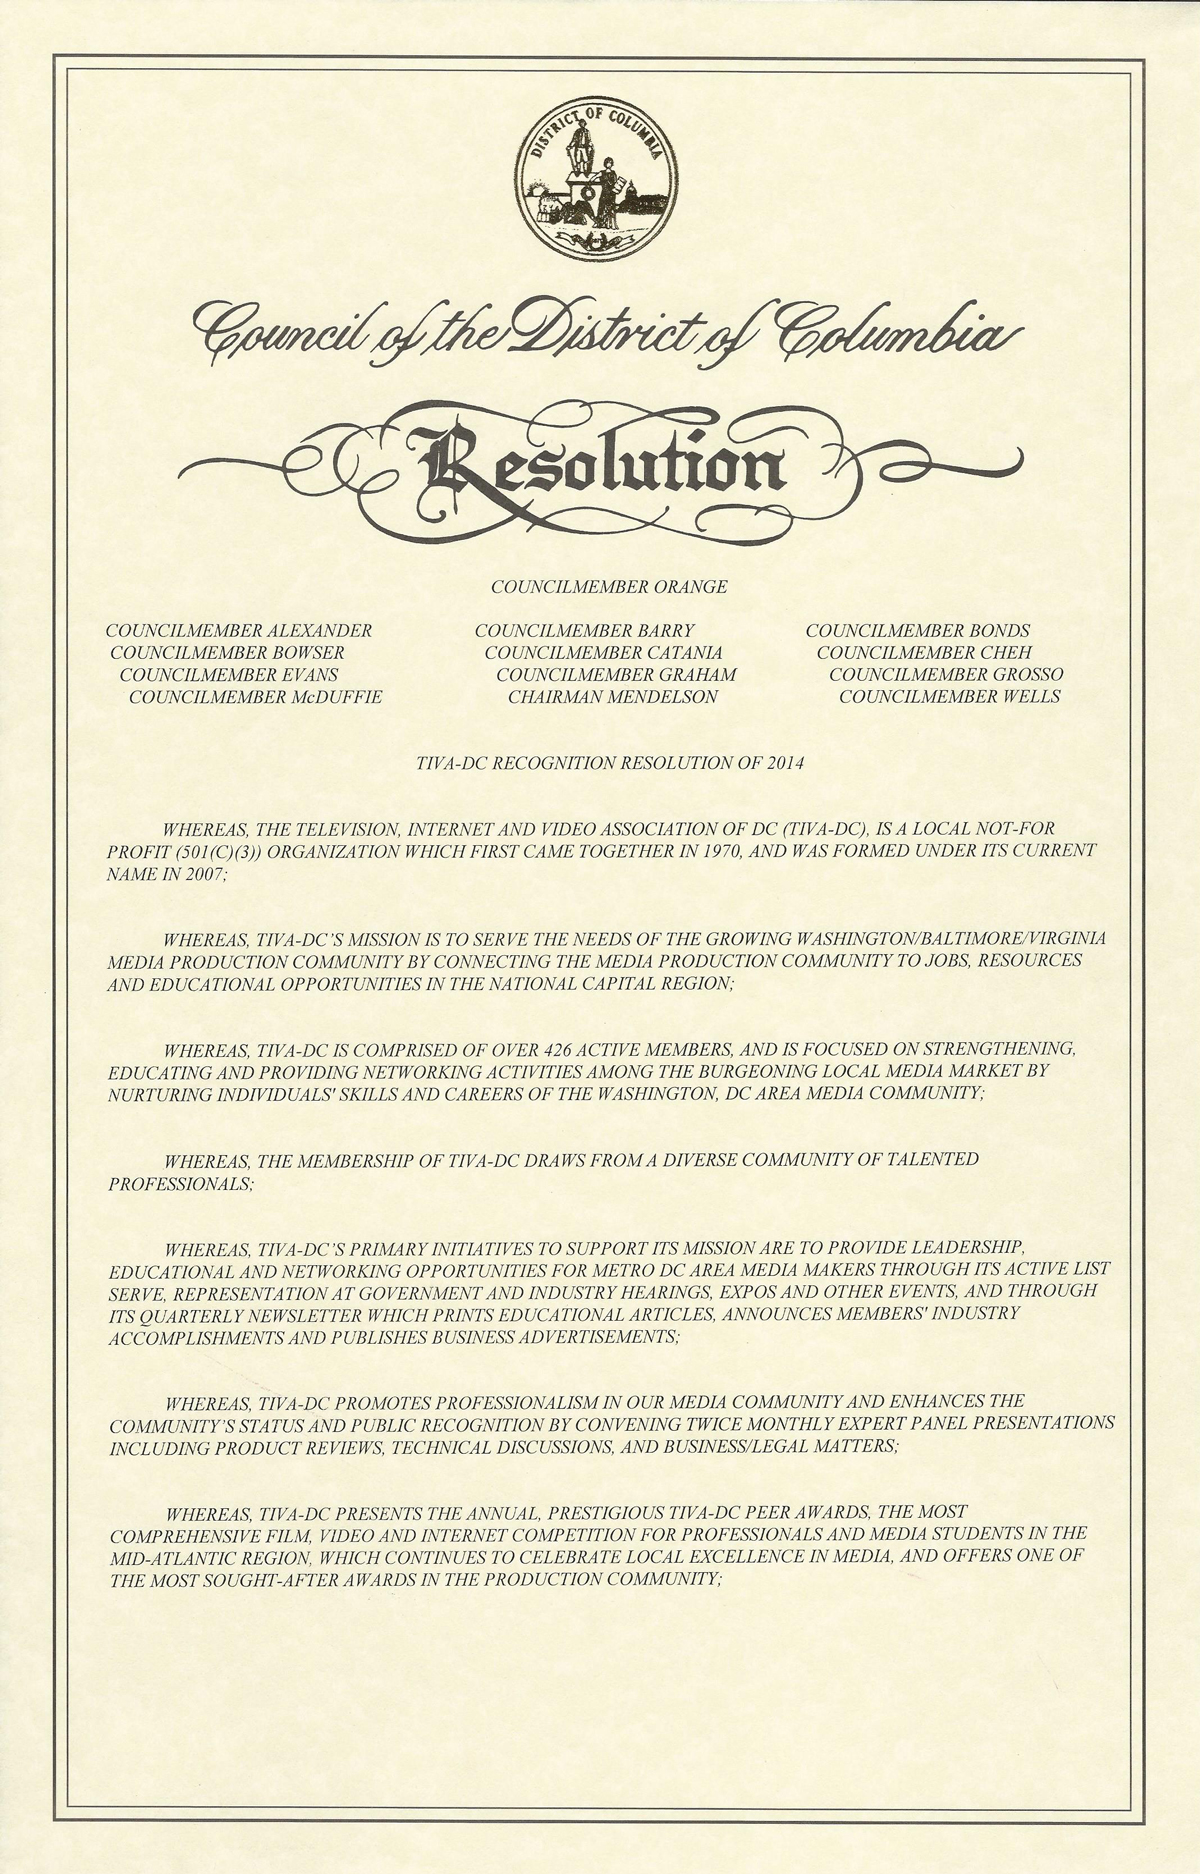 DC Council Resolution Page 1